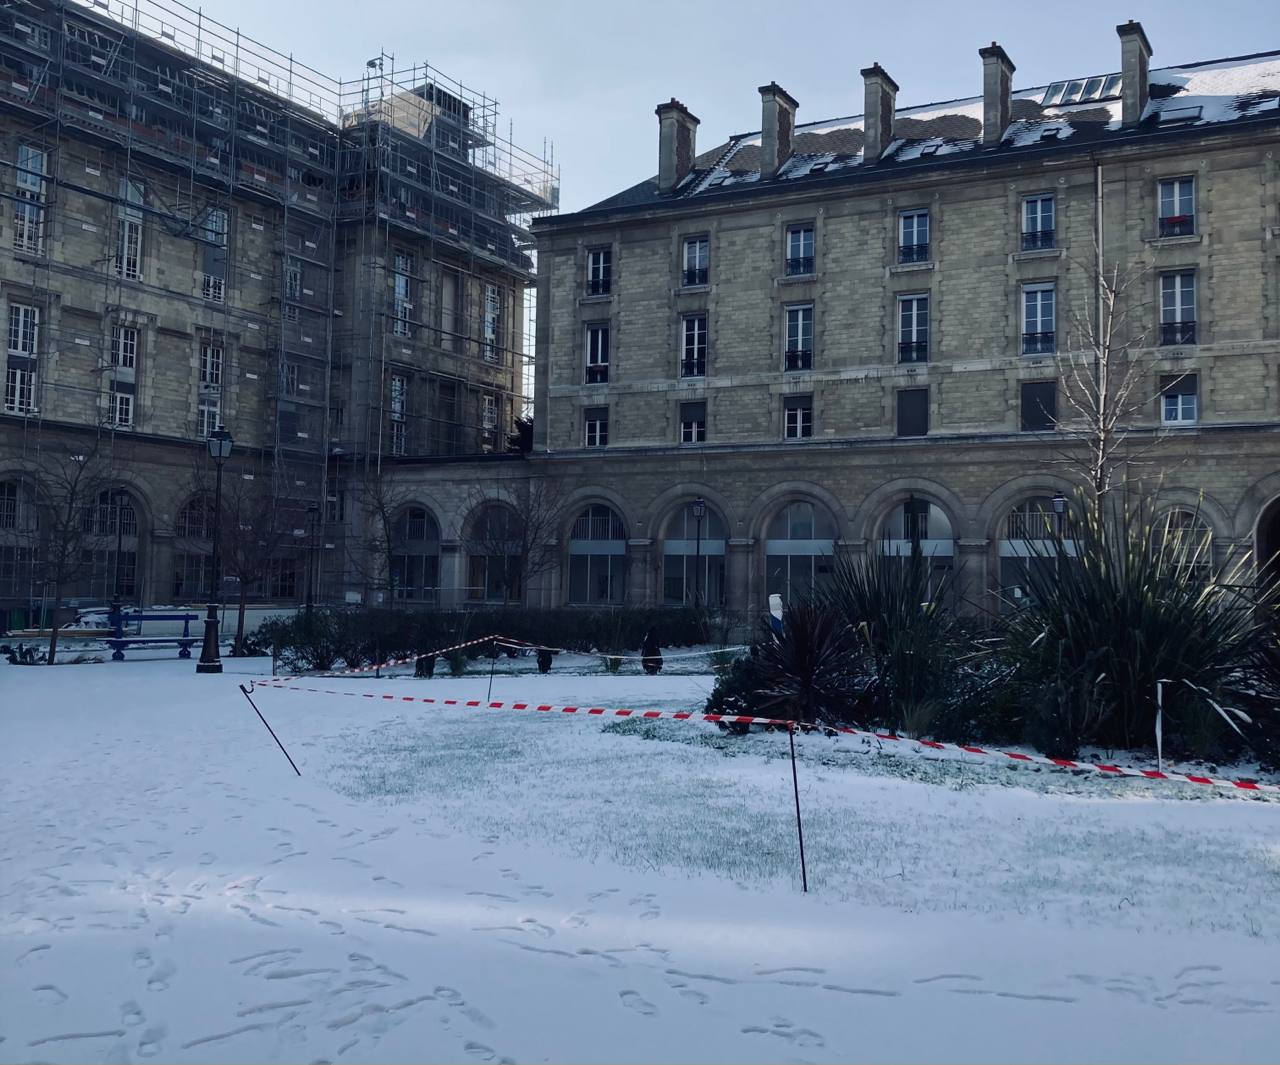 The hospital courtyard under the snow